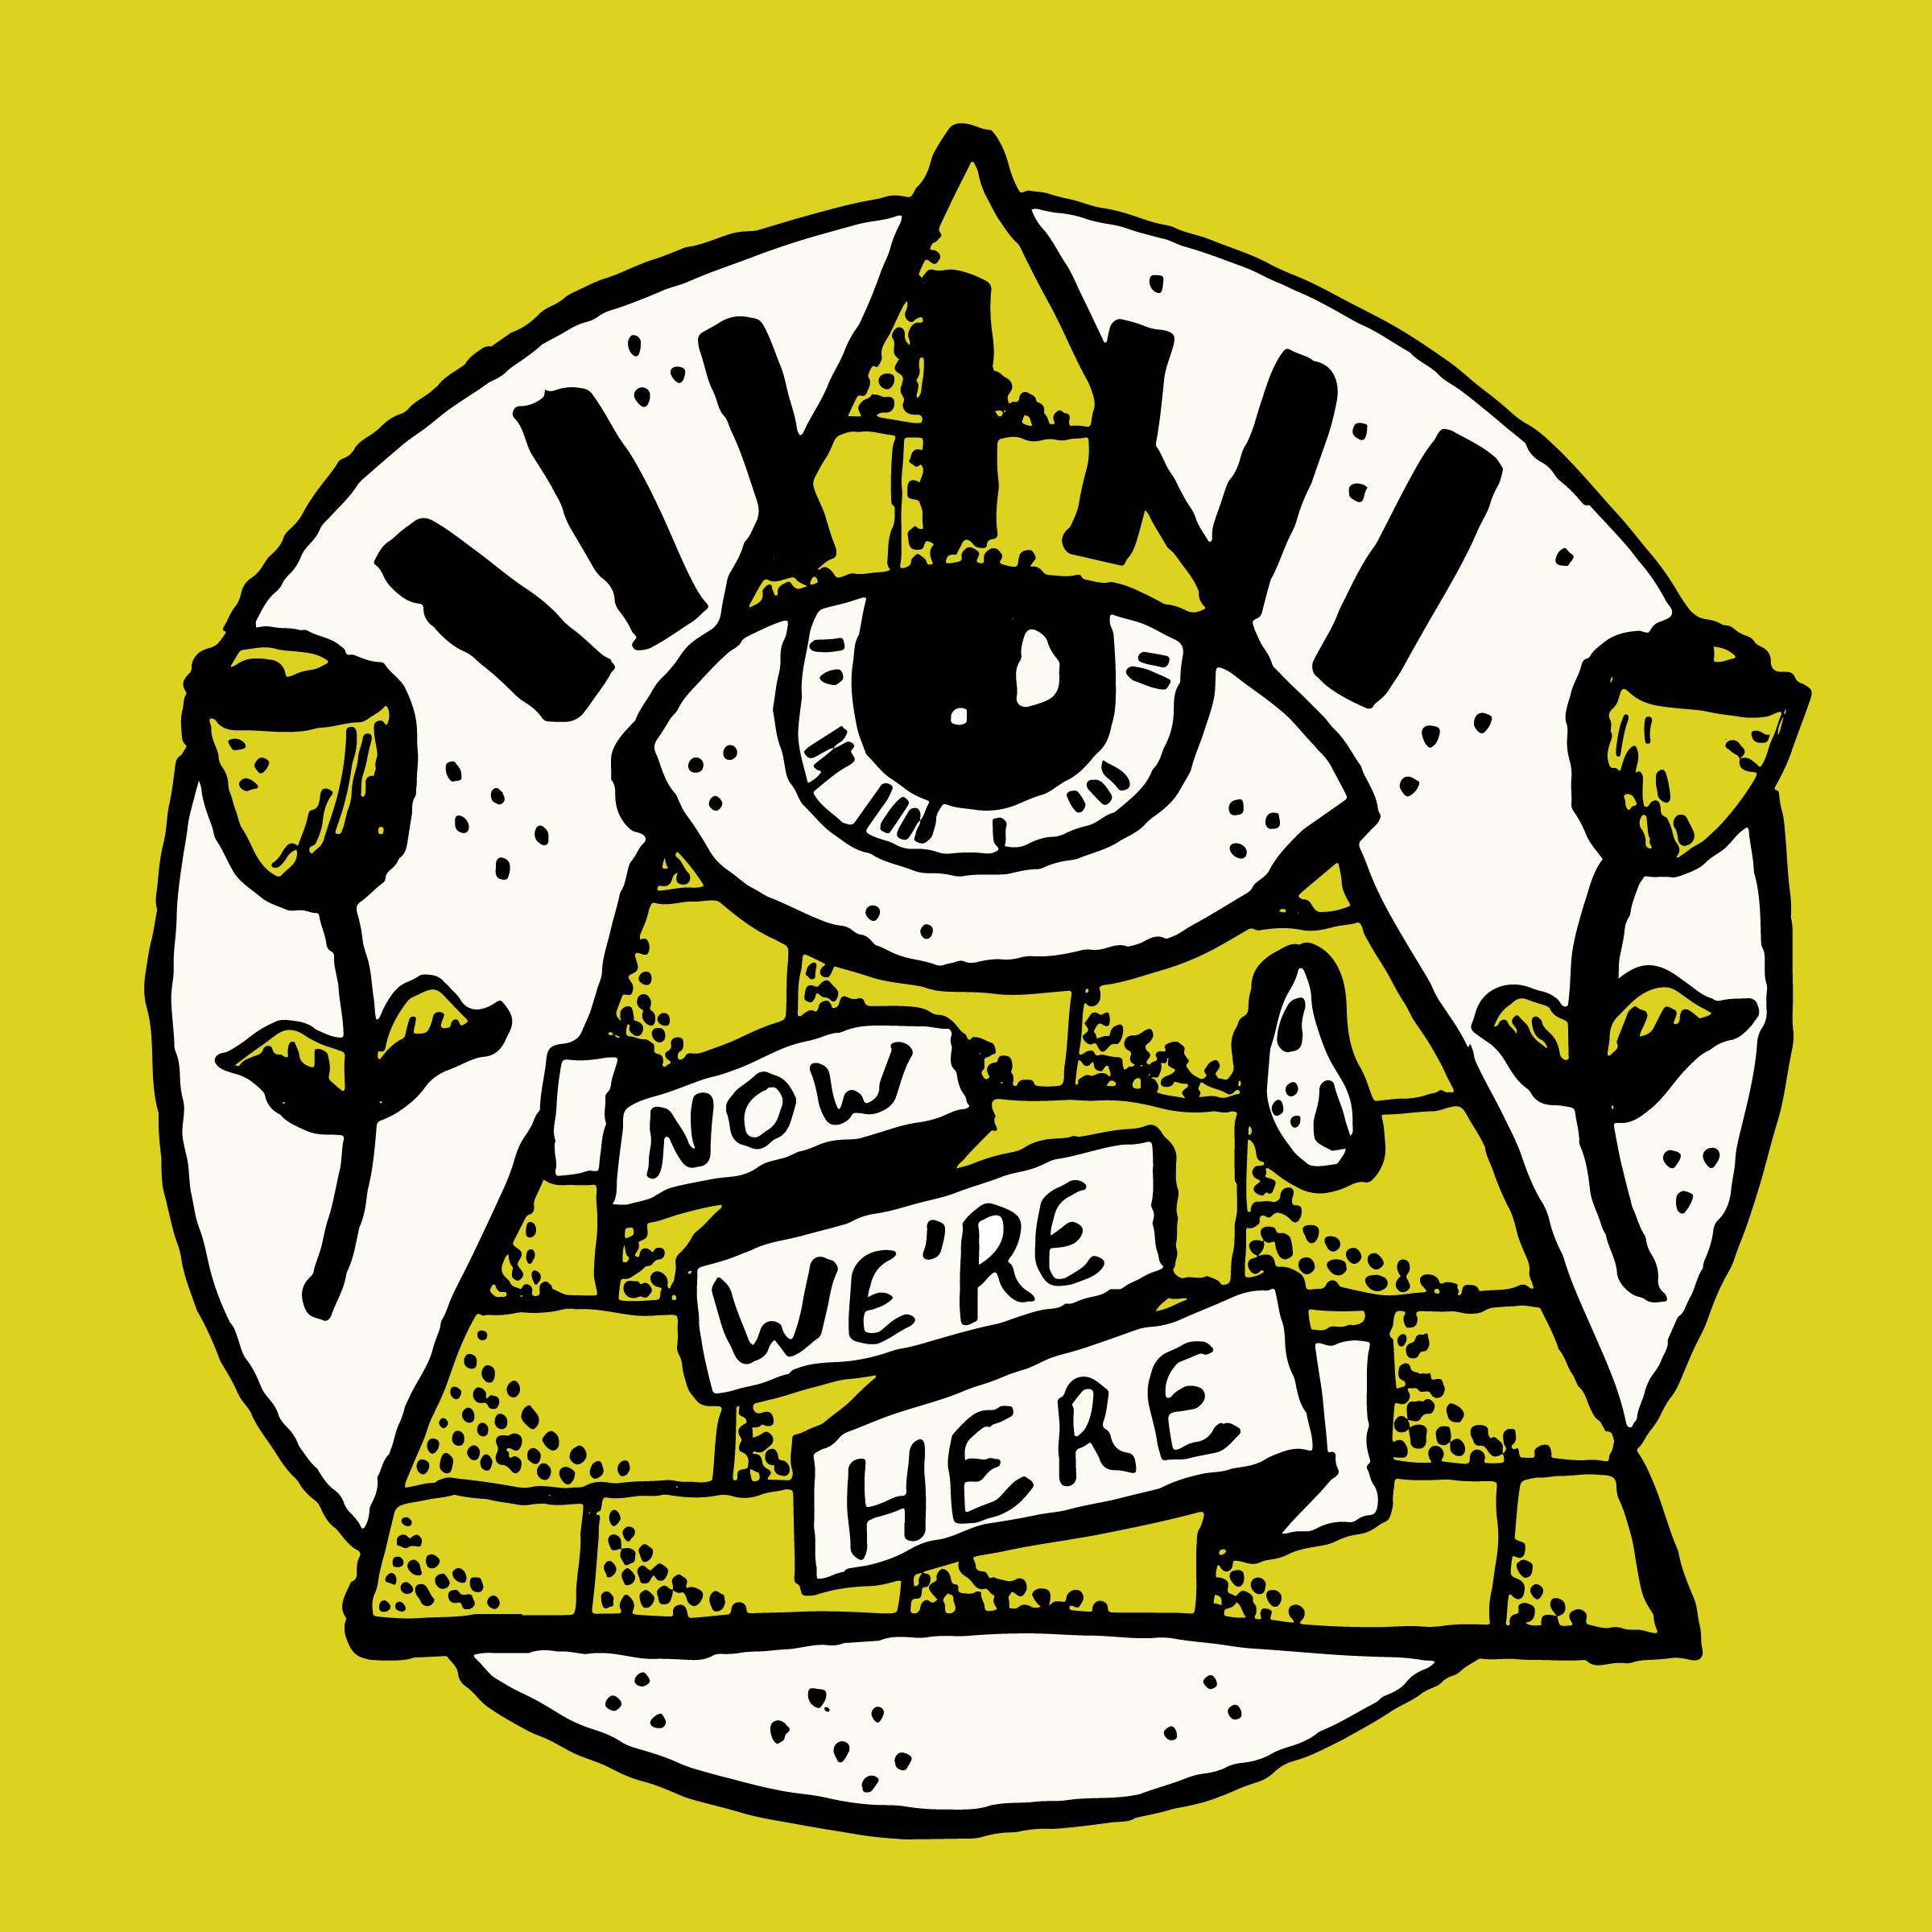 now_were_here-01.png